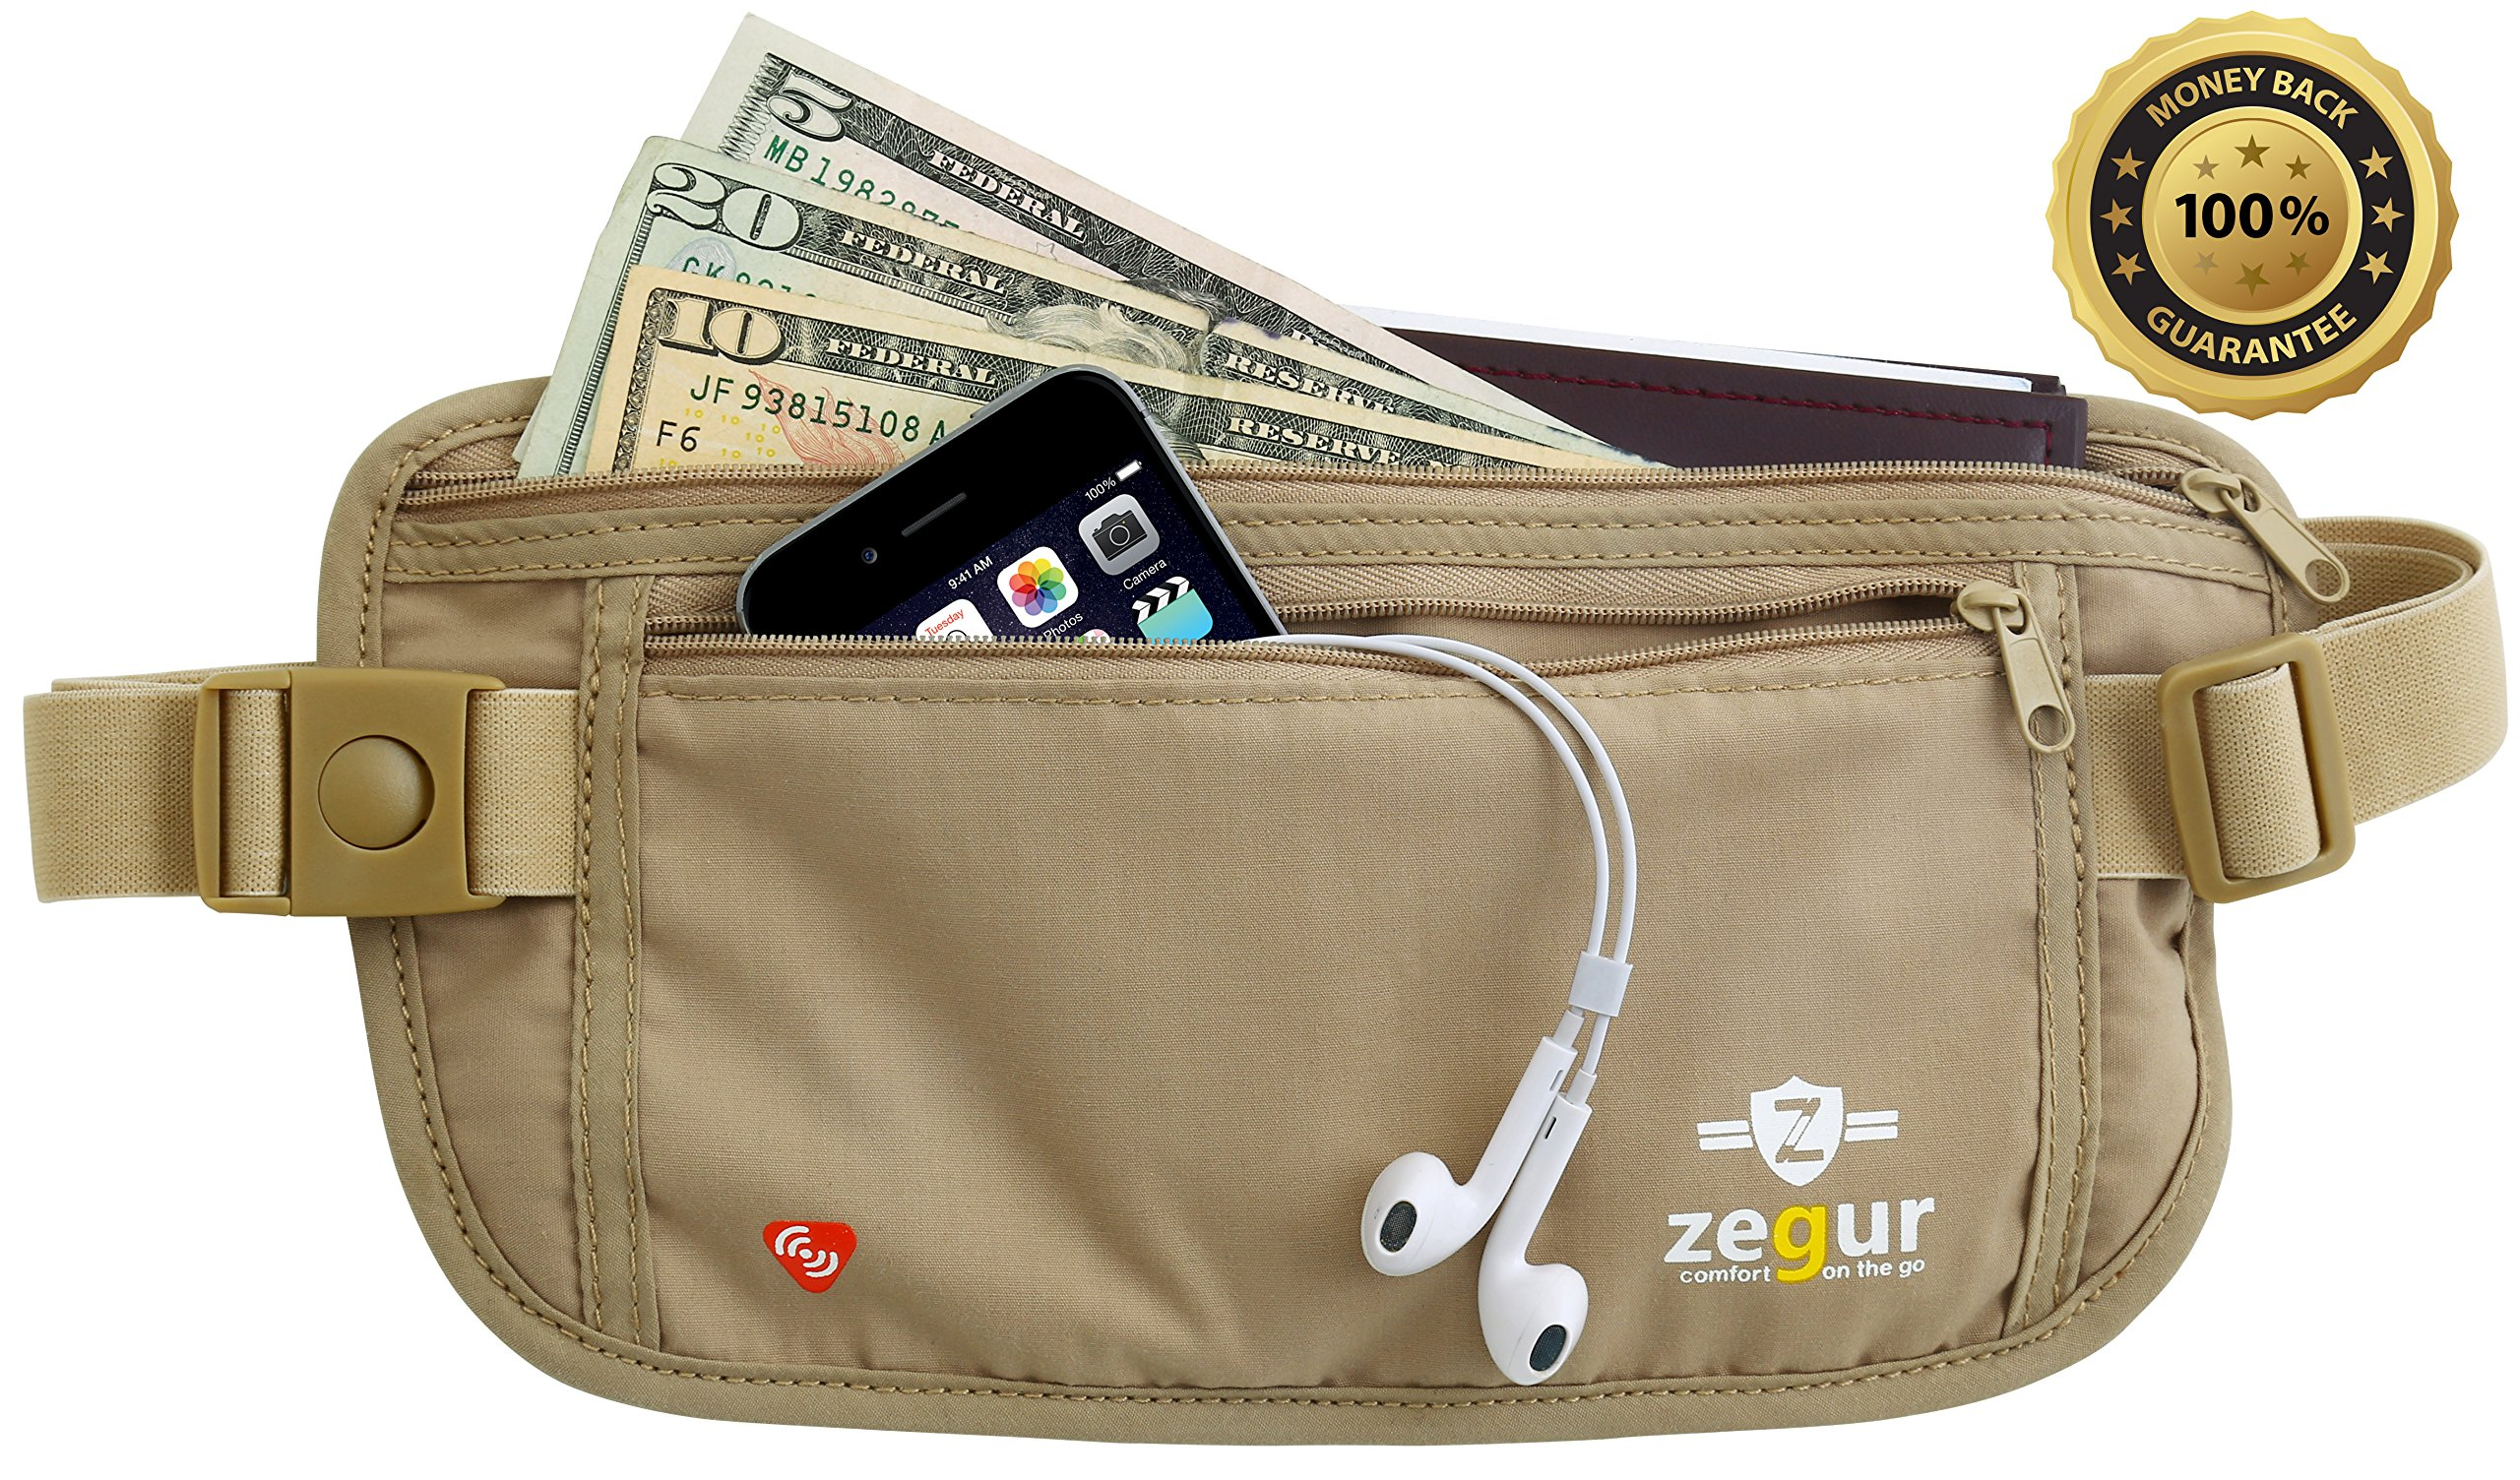 Zegur Tm Lightweight High Quality Undercover Beige Waist Money Belt Pouch - With RFID BLOCKING TECHNOLOGY Sleeves, Best to Protect Yourself From Travel Theft - Wallet Stash Made From Special ANTI SWEAT Cotton Material for Breathable & Moisture-wicking - E